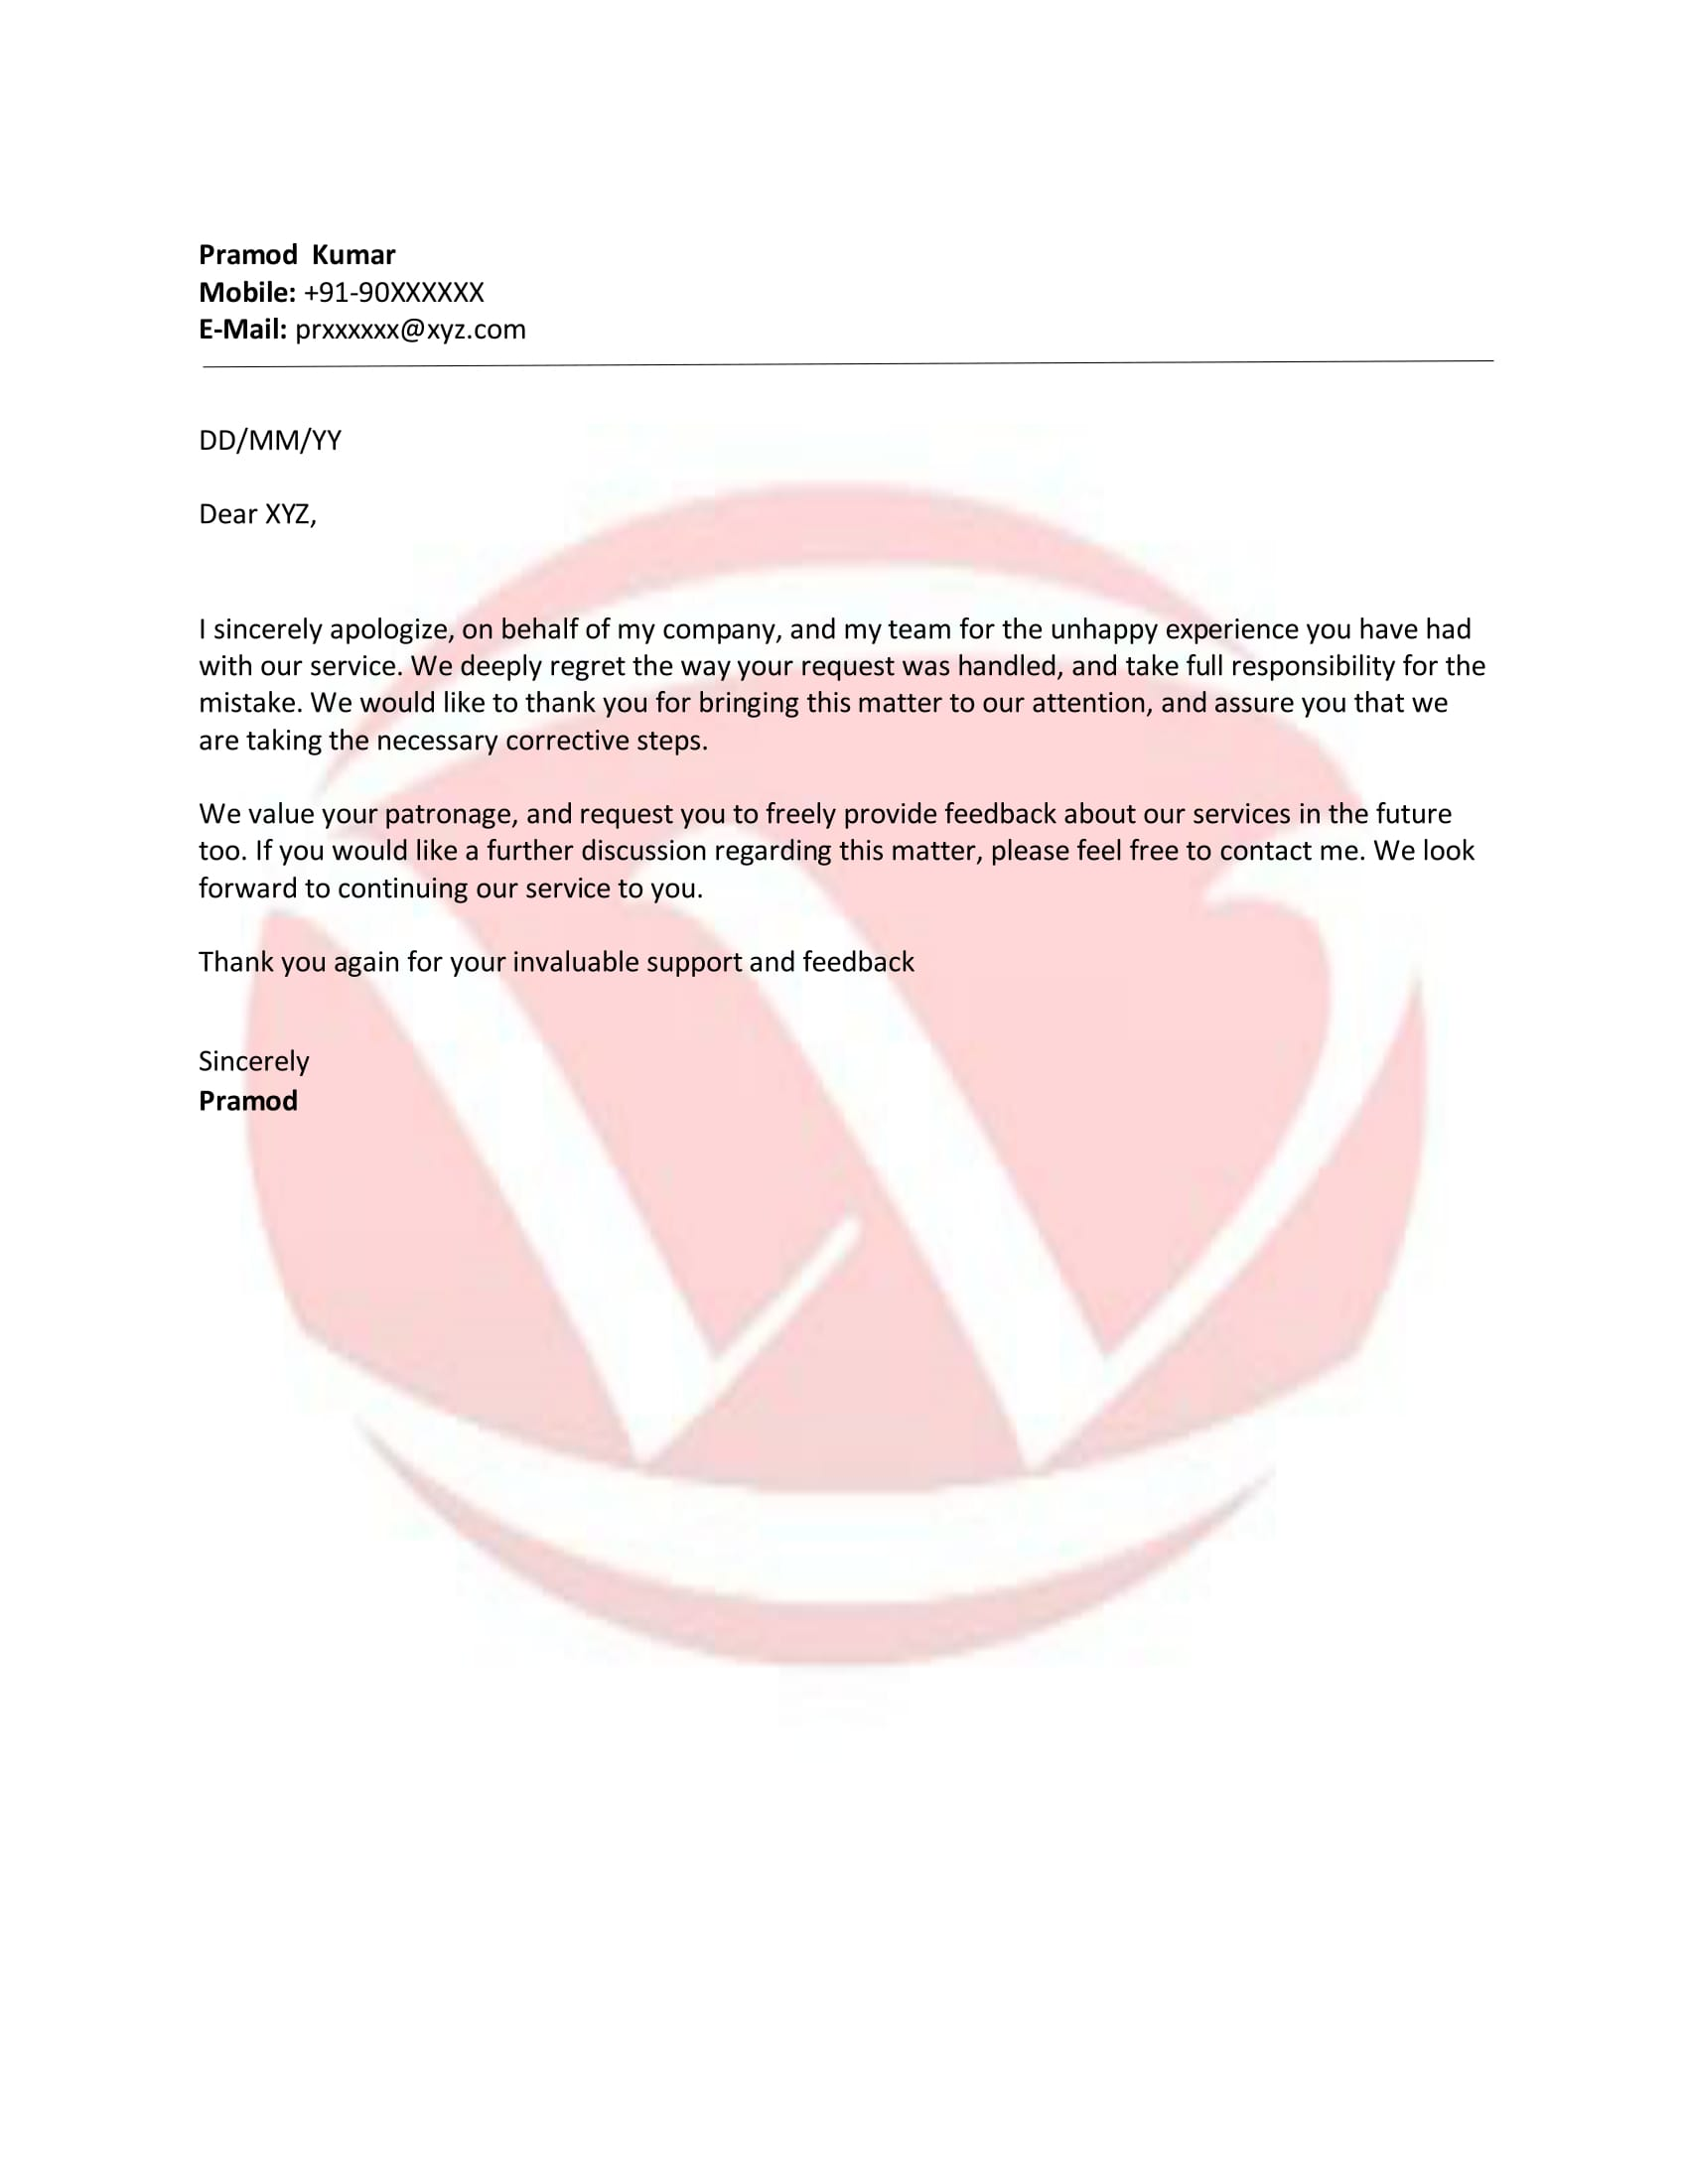 Apology Sample Letter Format Download Letter Format Templates